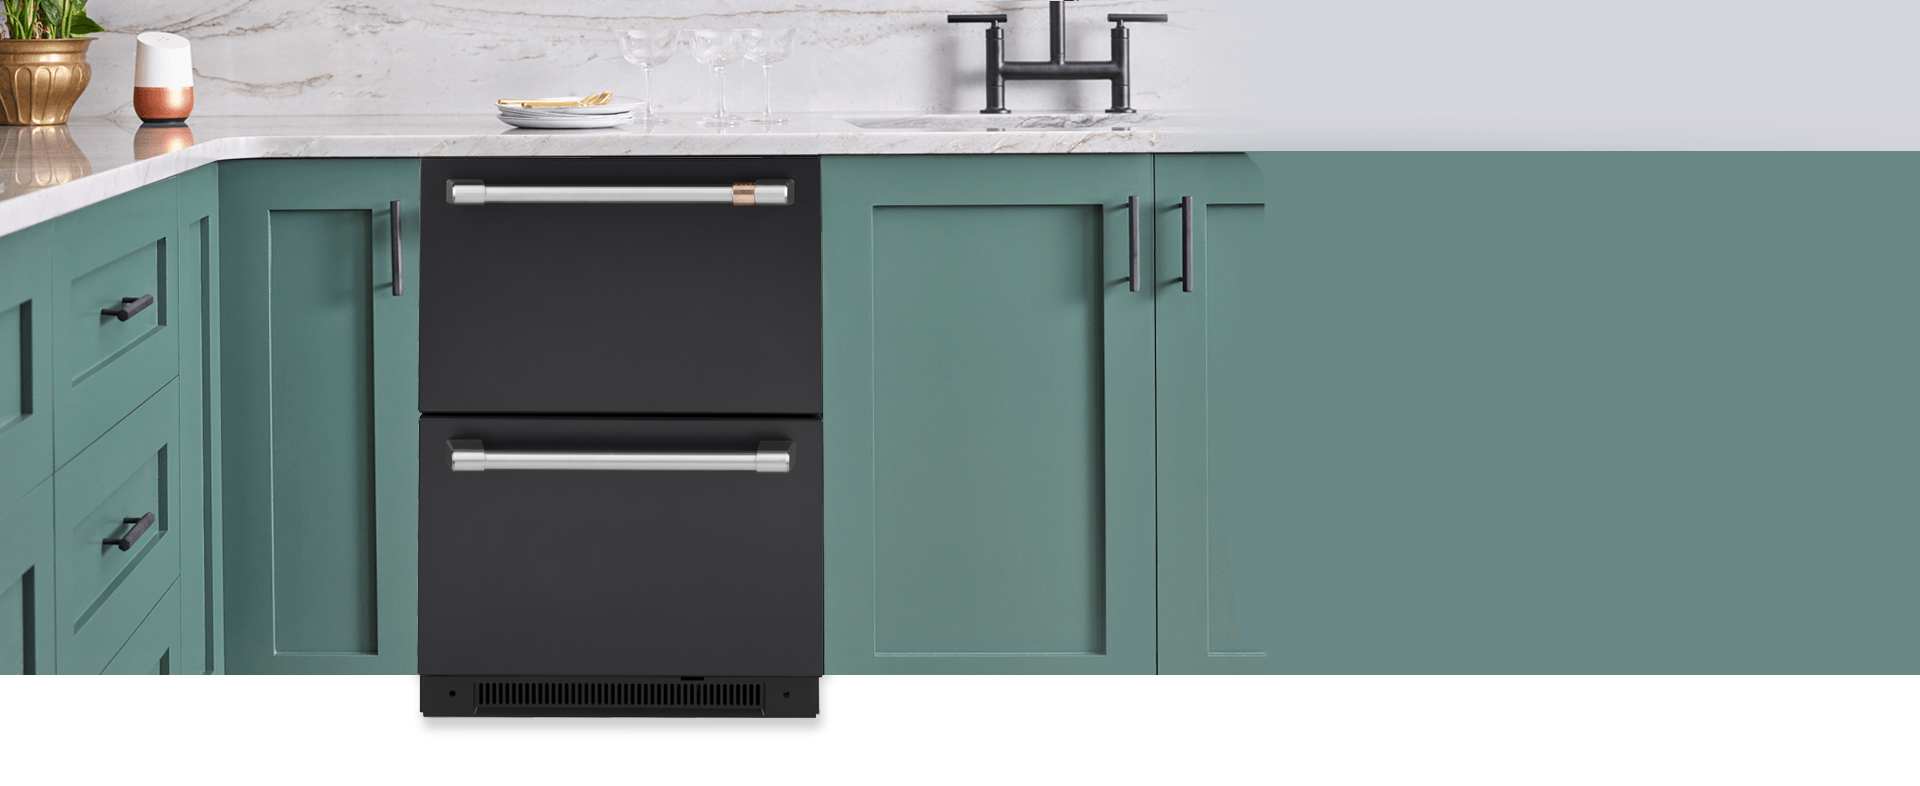 Dual Drawer Refrigerators With Customizable Hardware Cafe